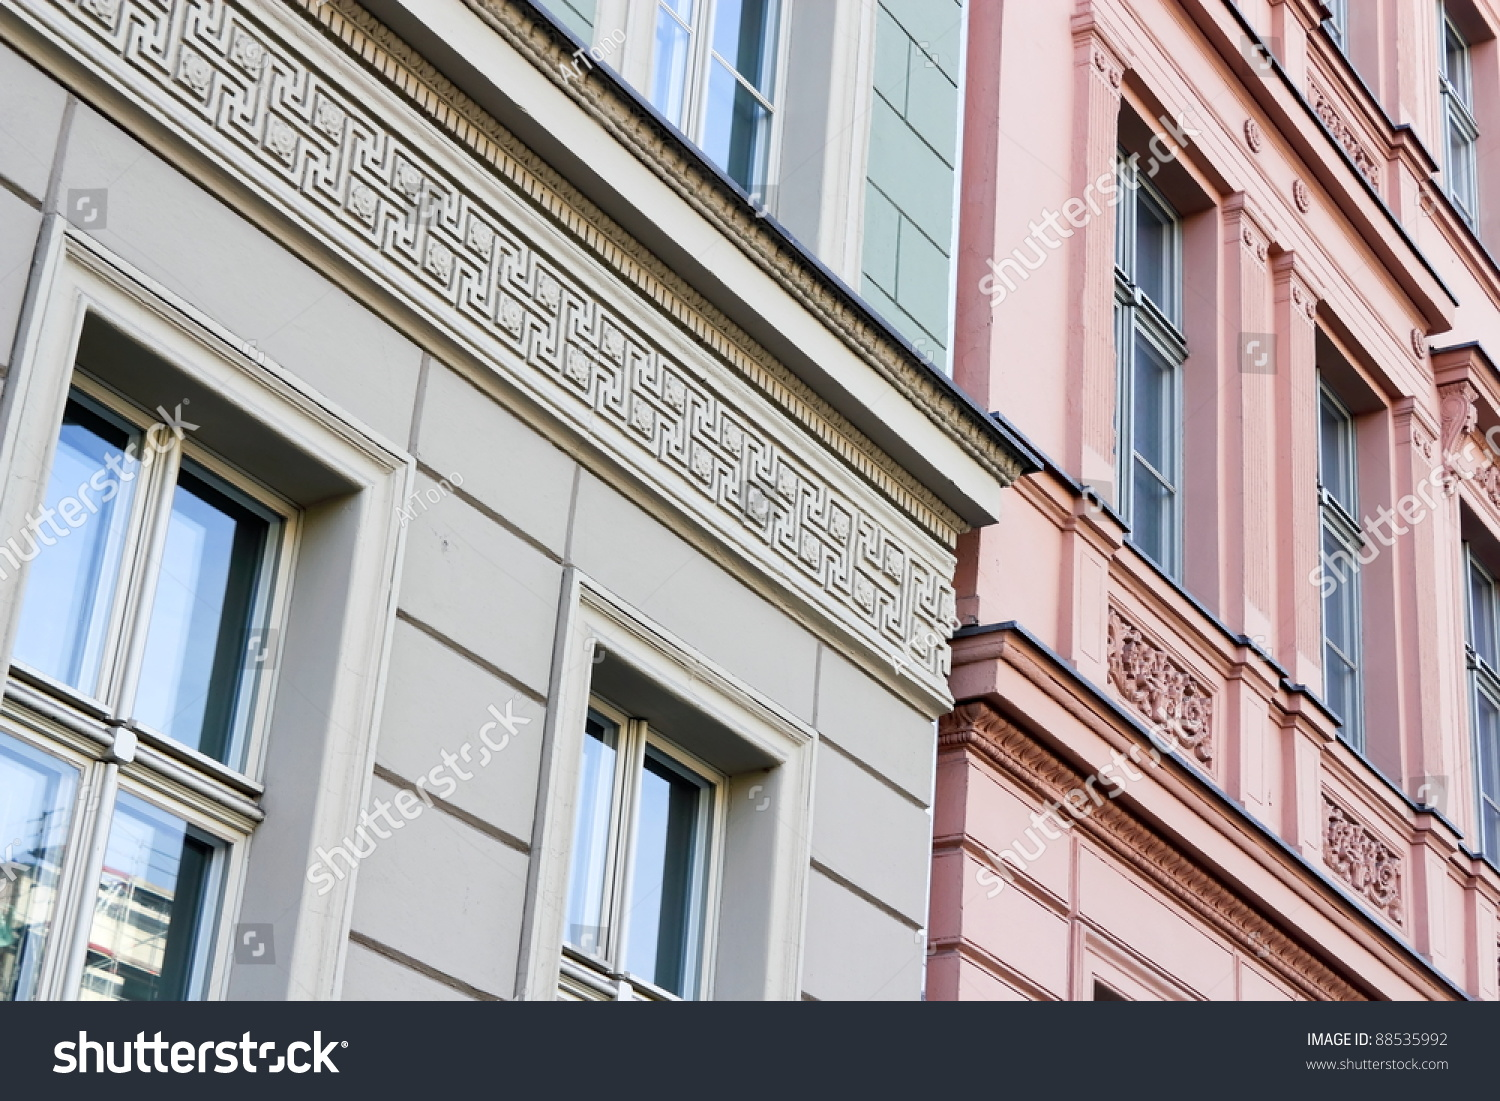 Stucco facades stock photo 88535992 shutterstock for Stucco facade